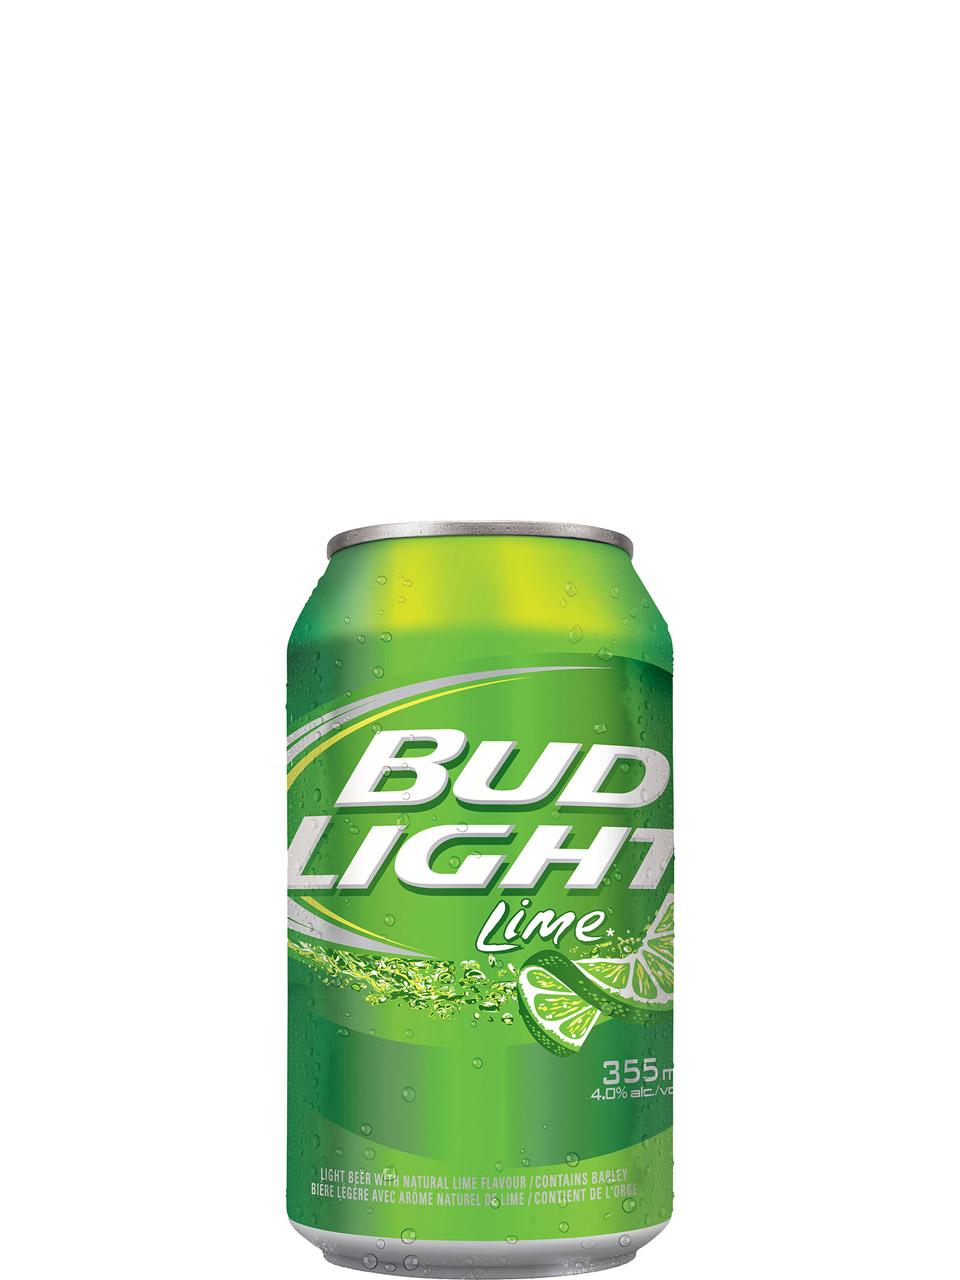 Bud Light Lime 8 Pack Cans